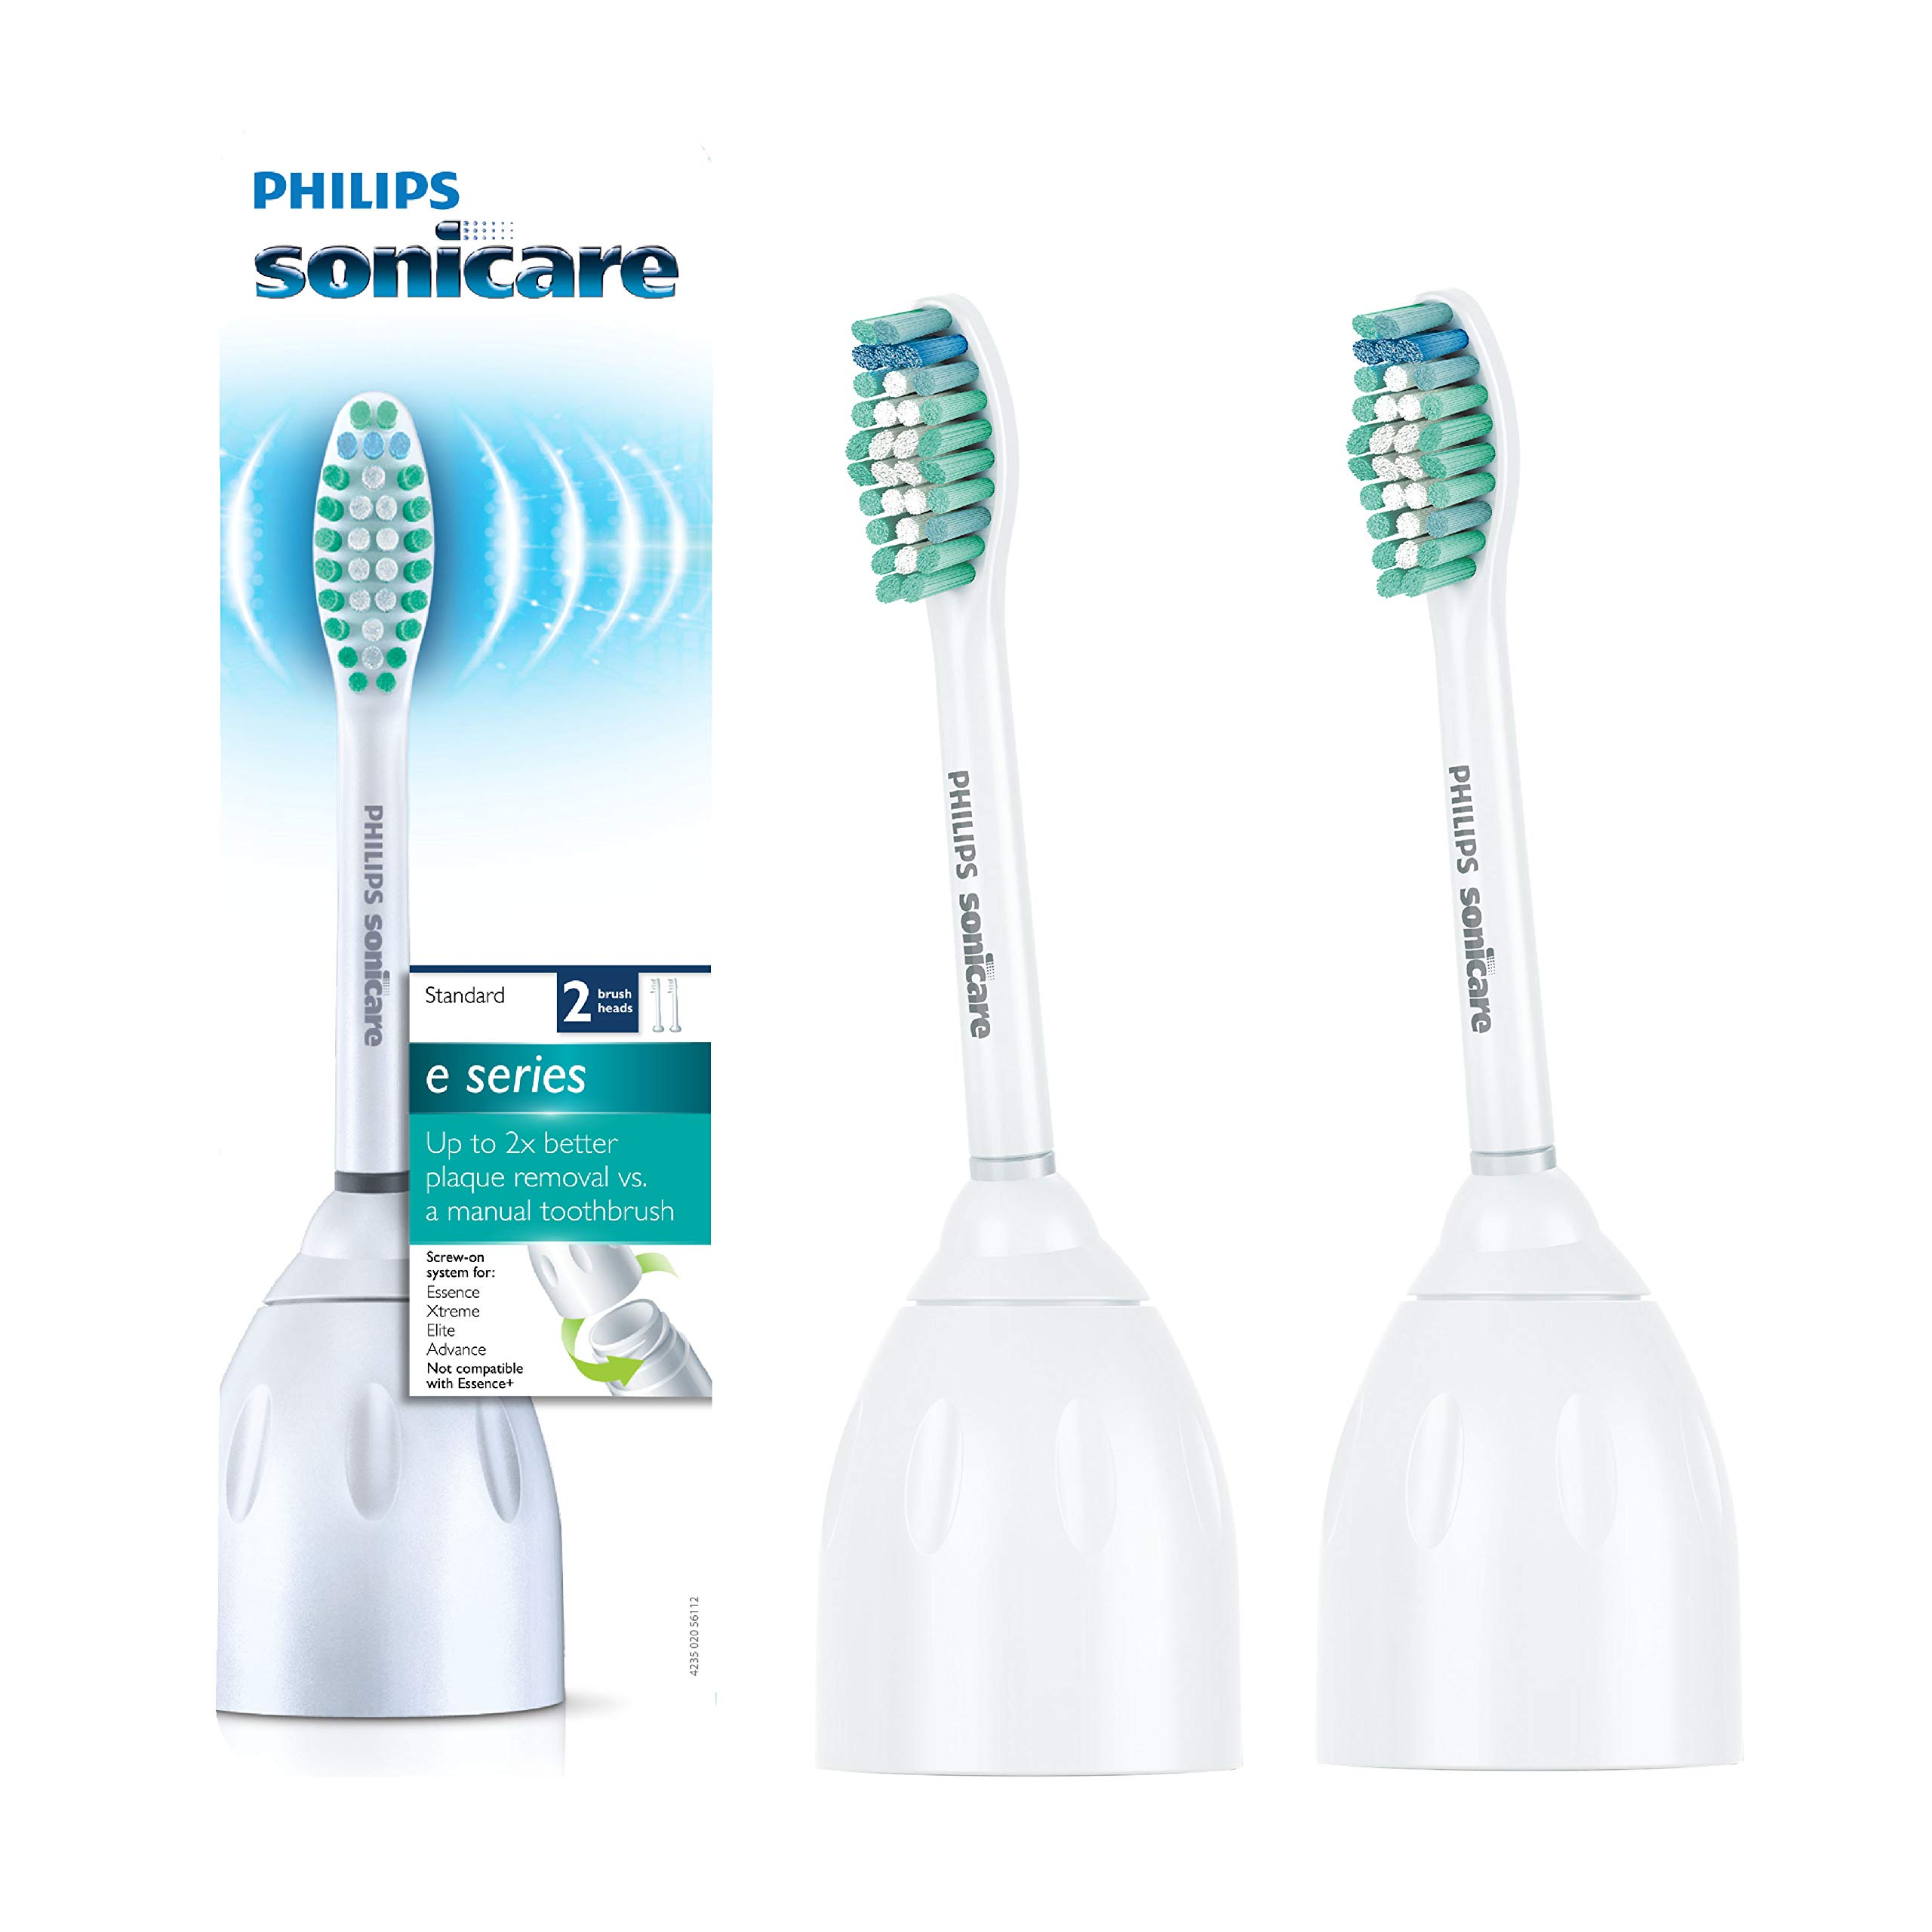 Genuine Philips Sonicare E-Series replacement toothbrush heads, HX7022/66, 2-pk by Philips Sonicare